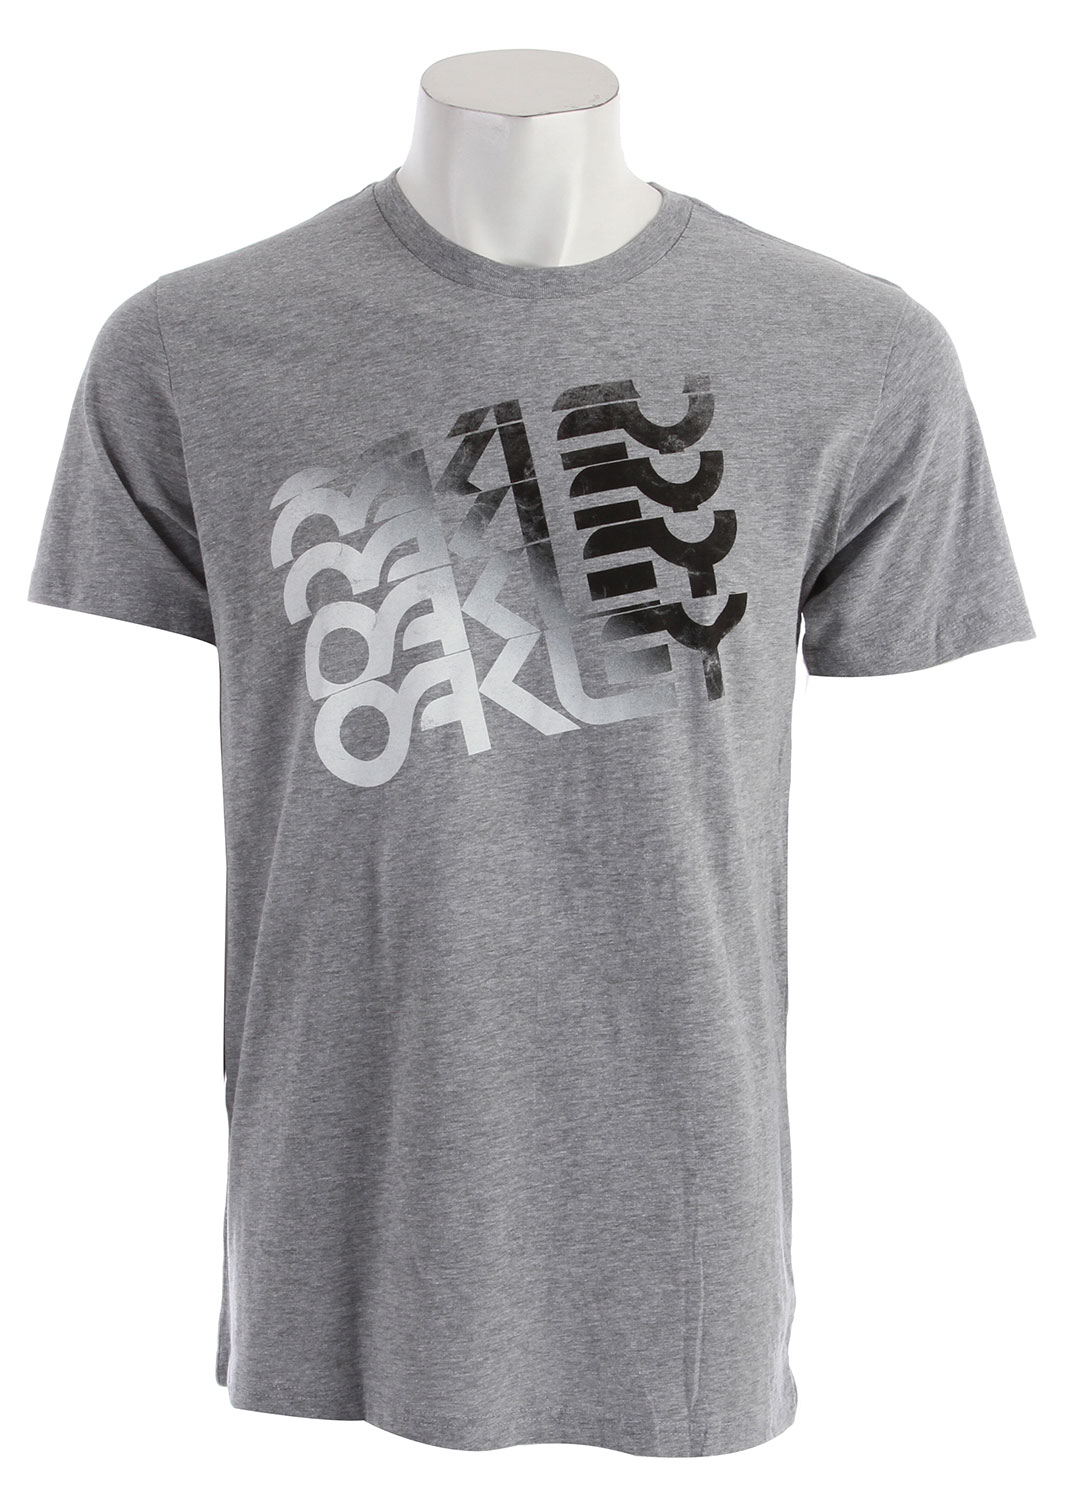 Via repeat color print, the cotton Quad Factory Tee pops on the beach and street to put the mark of elite amphibious lifestyle front and center.Key Features of the Oakley Quad Factory T-Shirt: 100% cotton T-shirt Print on front Fit: Regular - $20.00